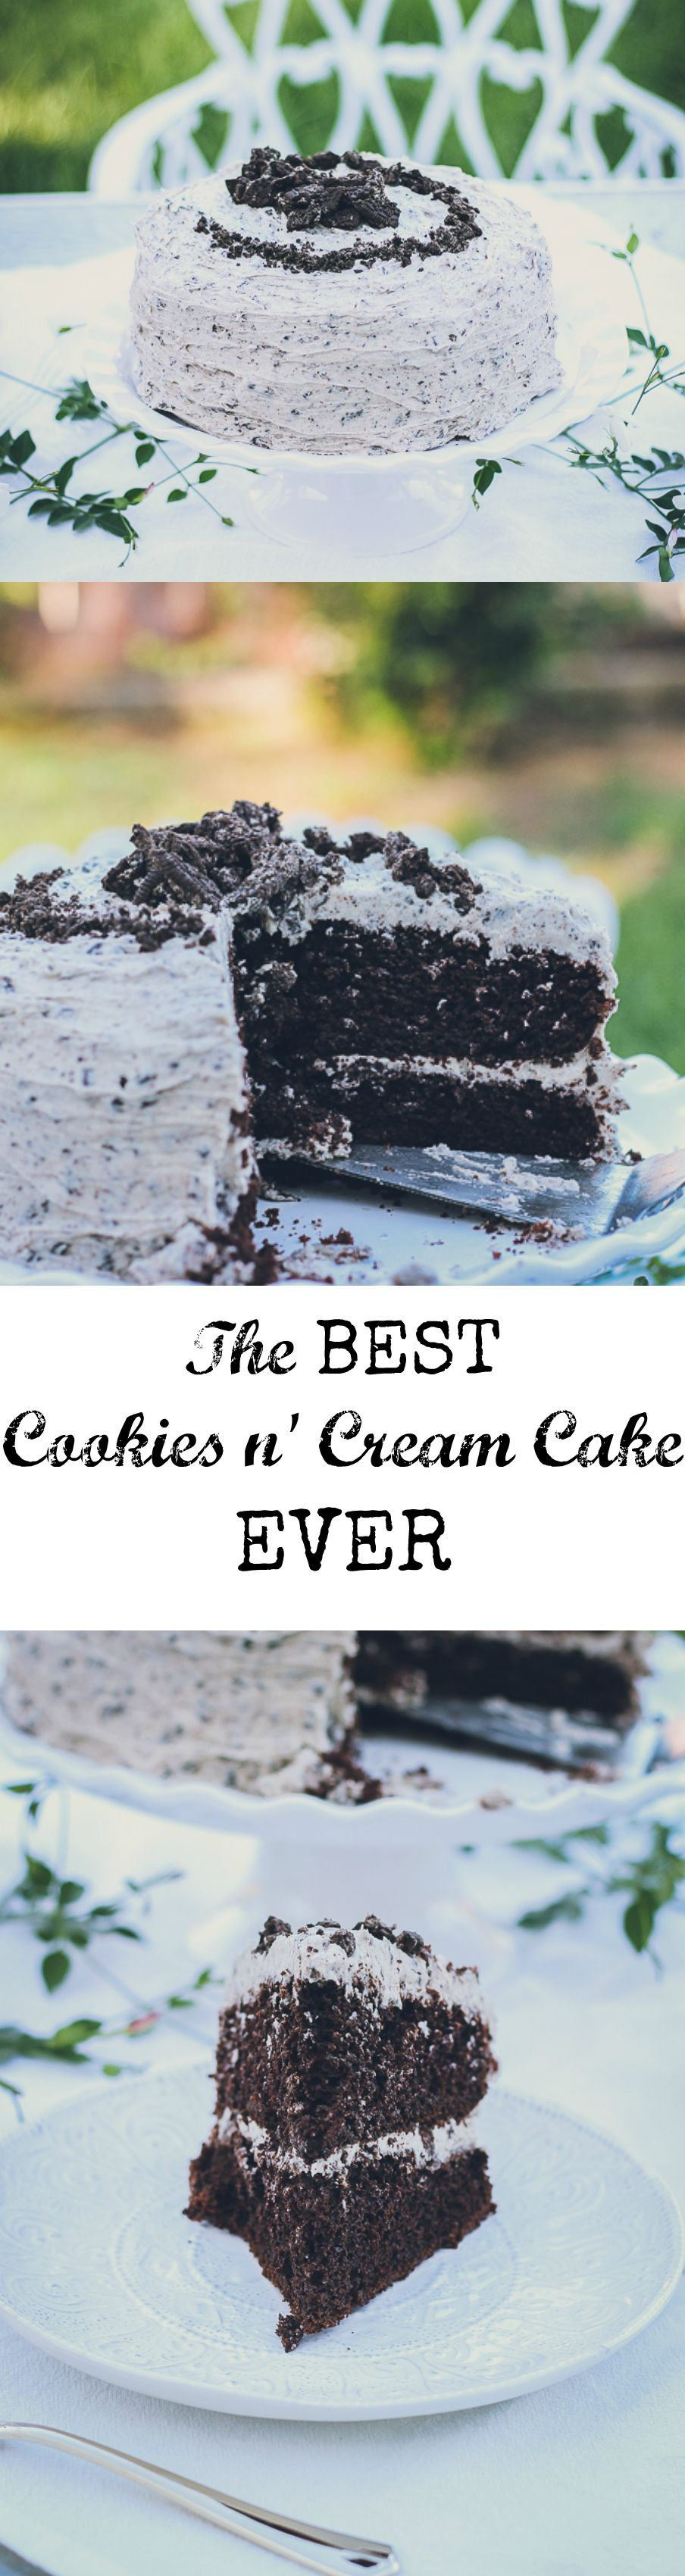 The Best Cookies & Cream Cake #cookiesandcreamfrosting